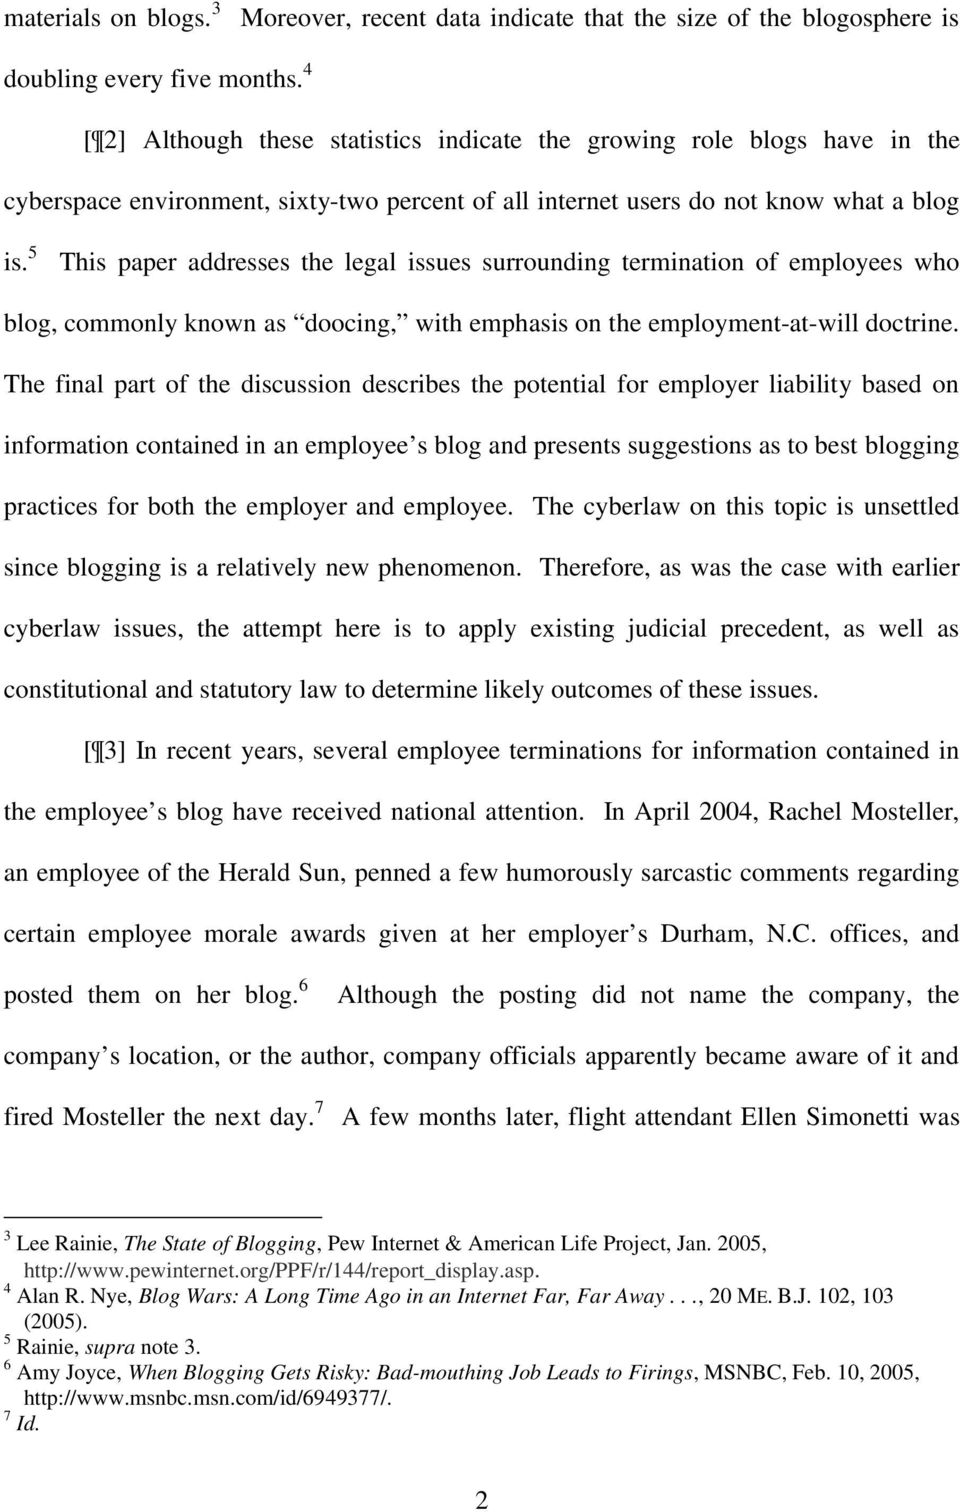 5 This paper addresses the legal issues surrounding termination of employees who blog, commonly known as doocing, with emphasis on the employment-at-will doctrine.